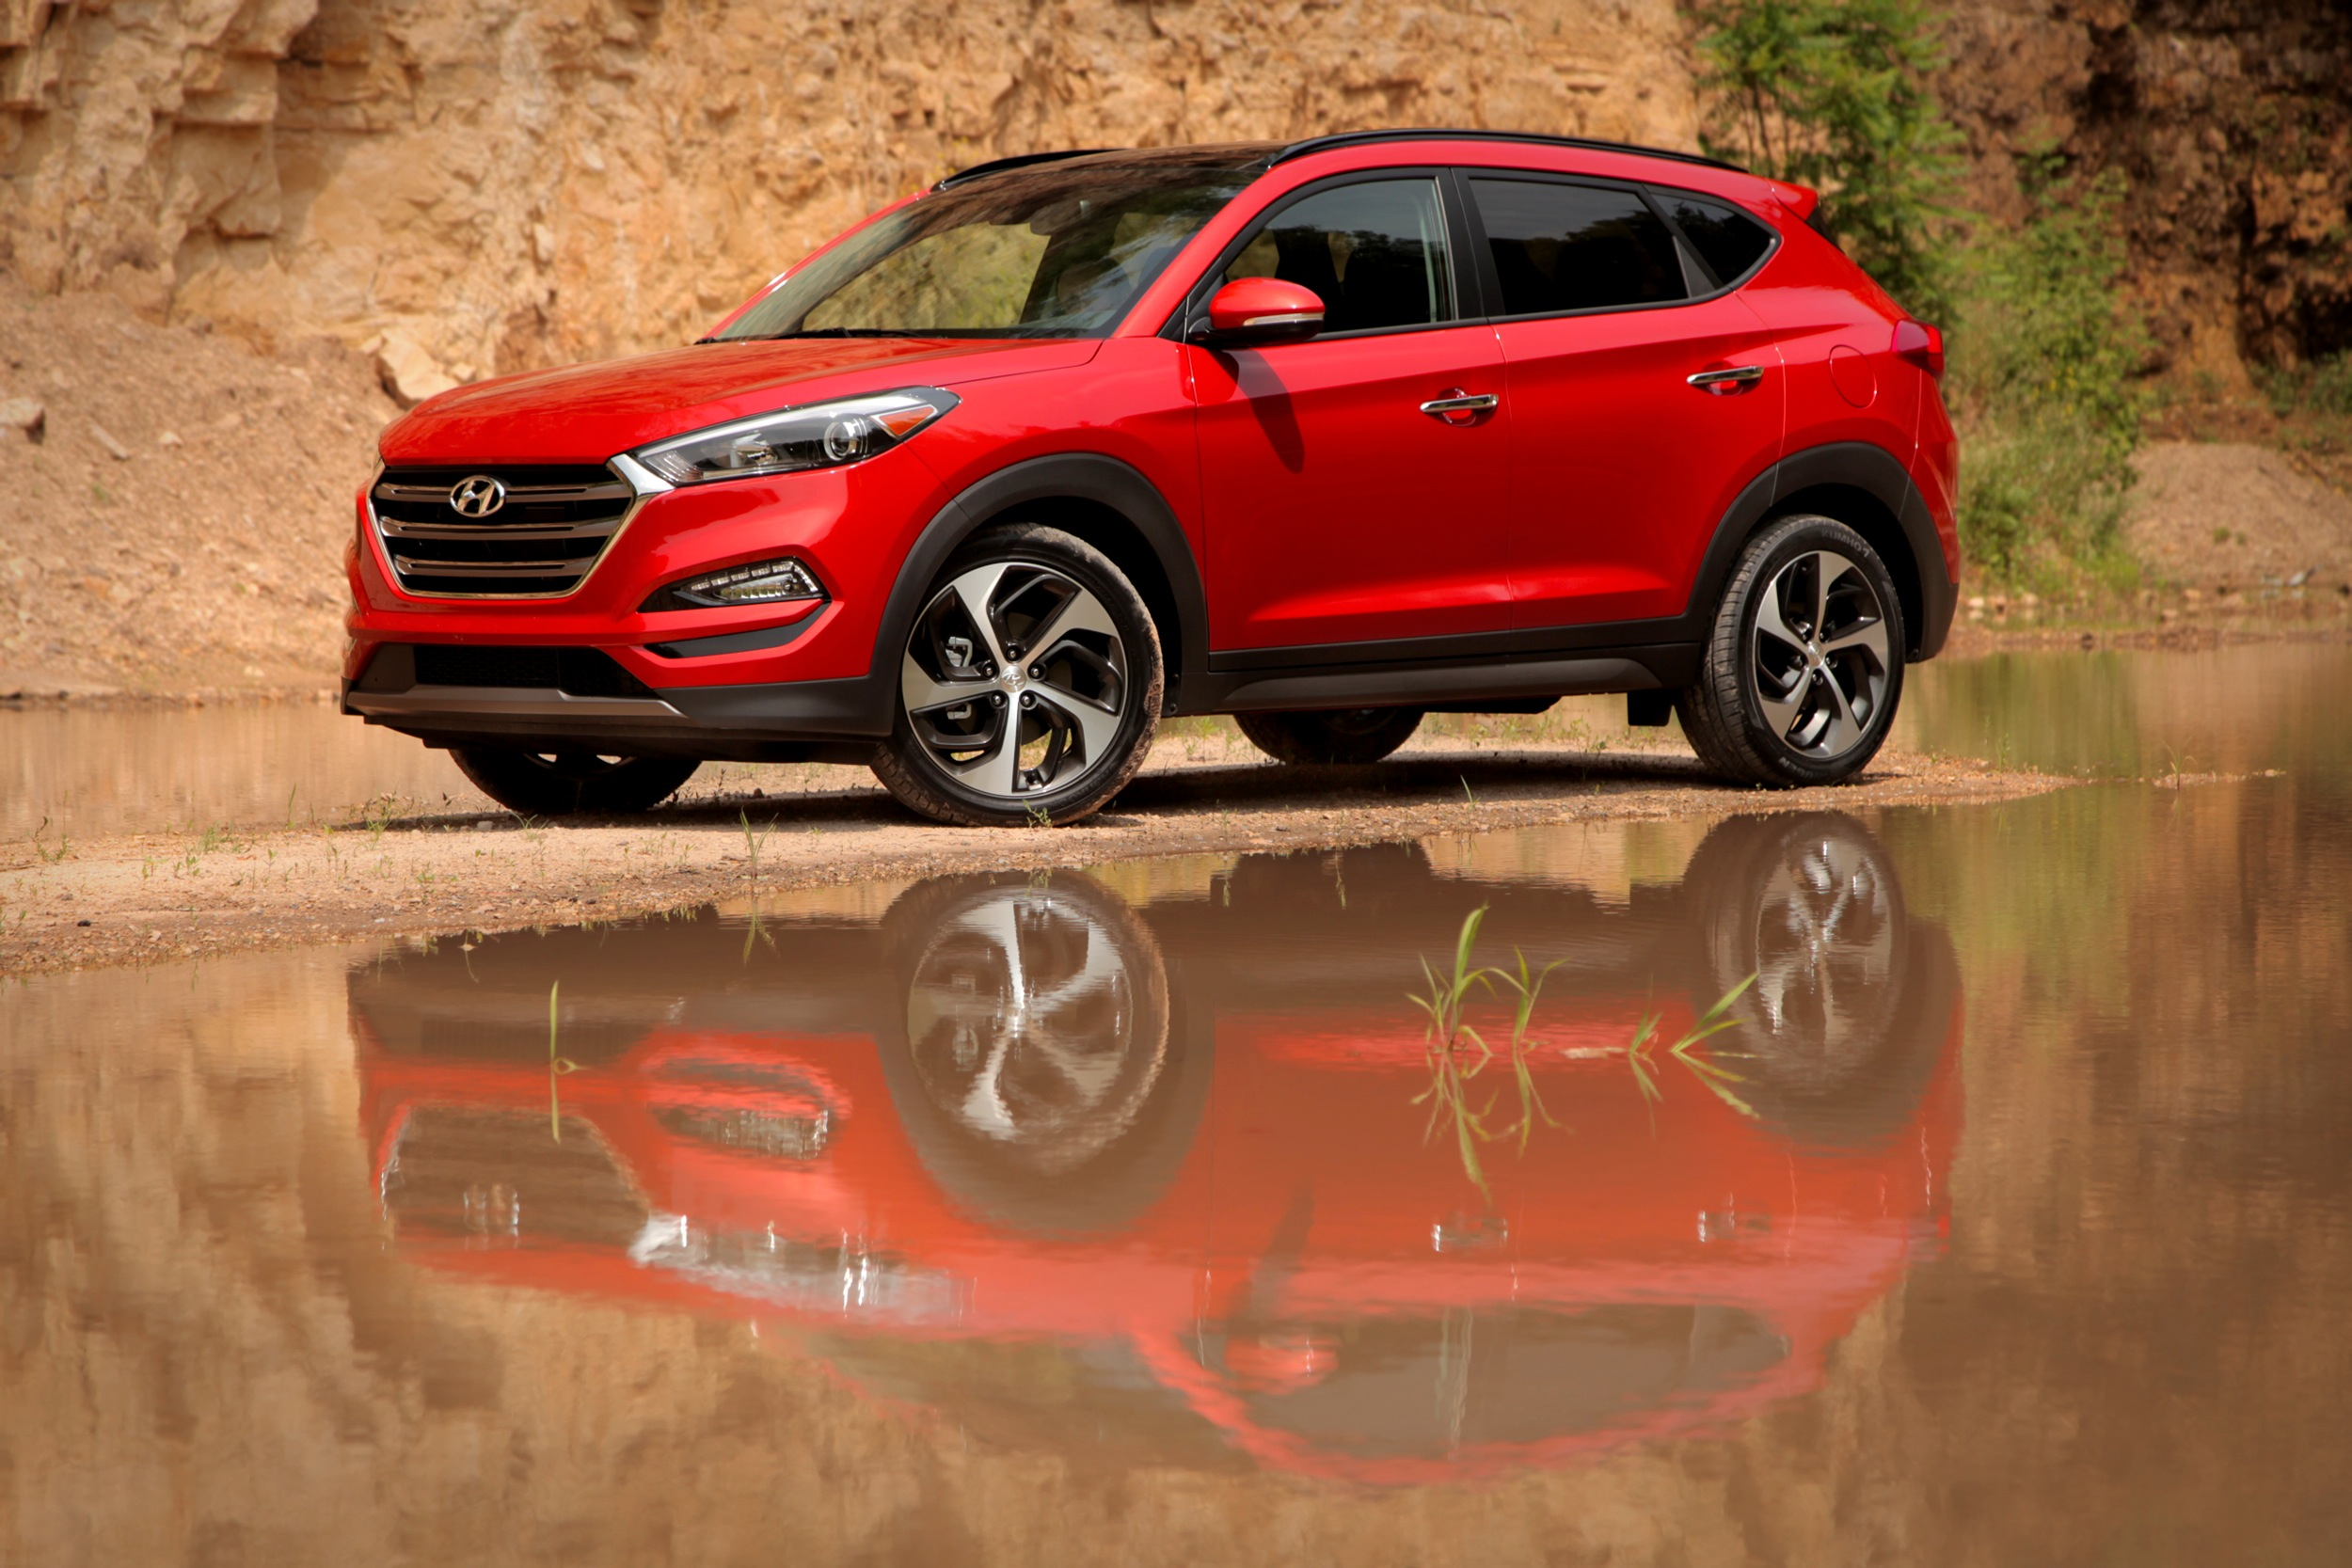 2016 hyundai tucson first drive w video hyundai forums hyundai forum. Black Bedroom Furniture Sets. Home Design Ideas